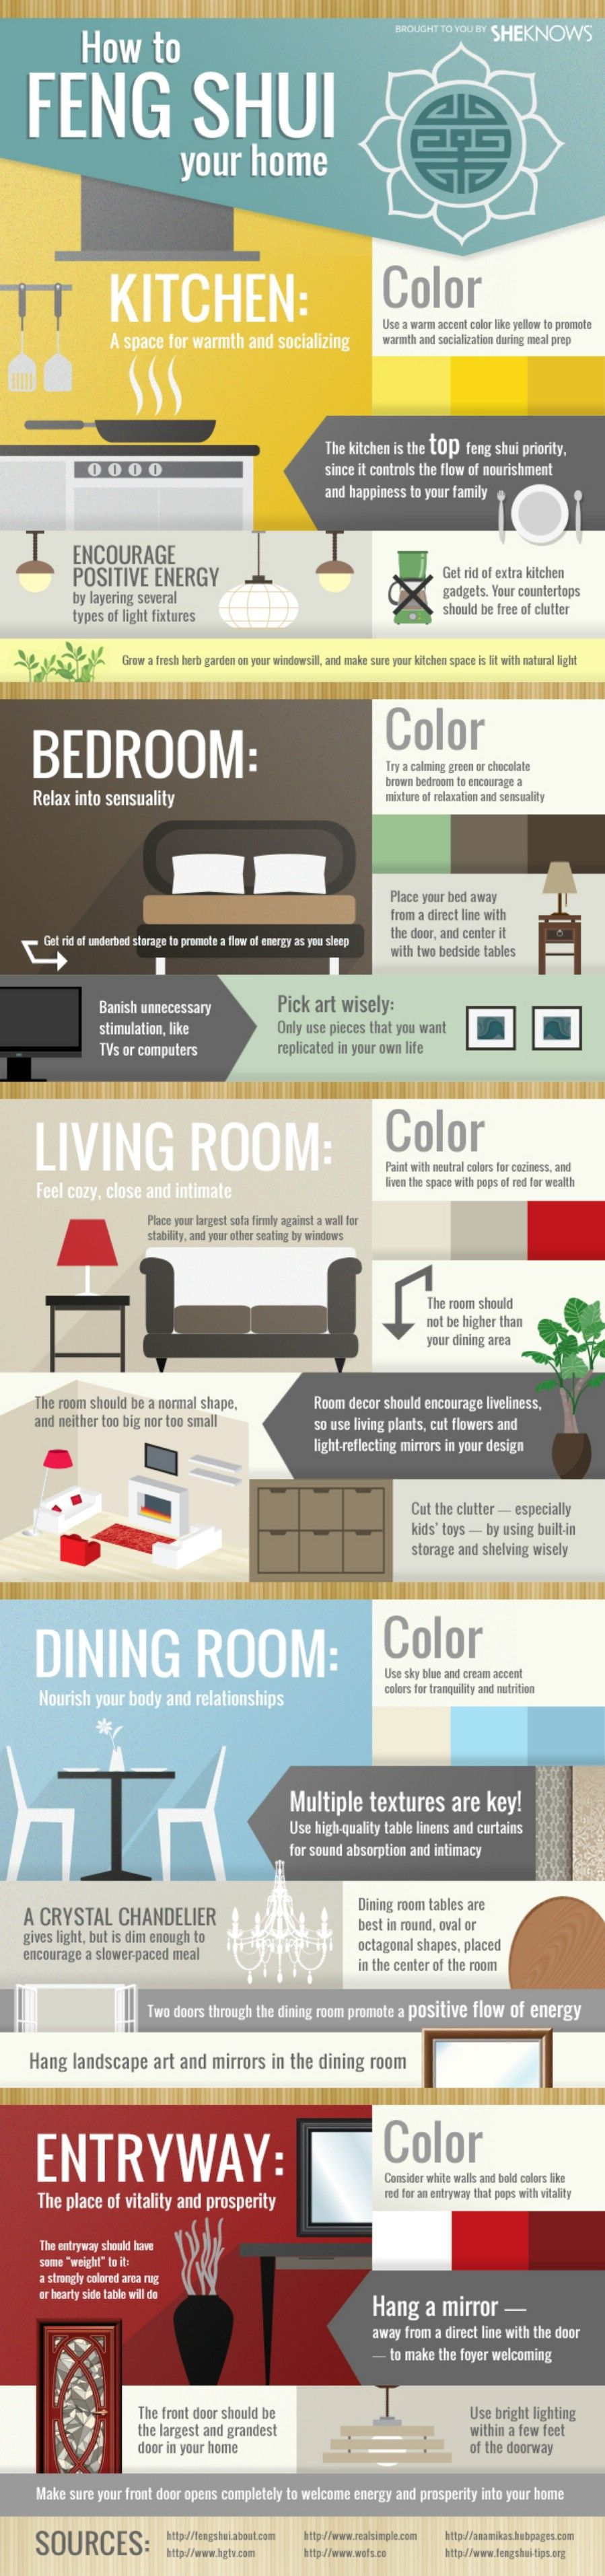 Feng Shui Aufteilung Wohnung Schlafzimmer 42 How To Feng Shui Your Home 50 Amazingly Clever Cheat Sheets